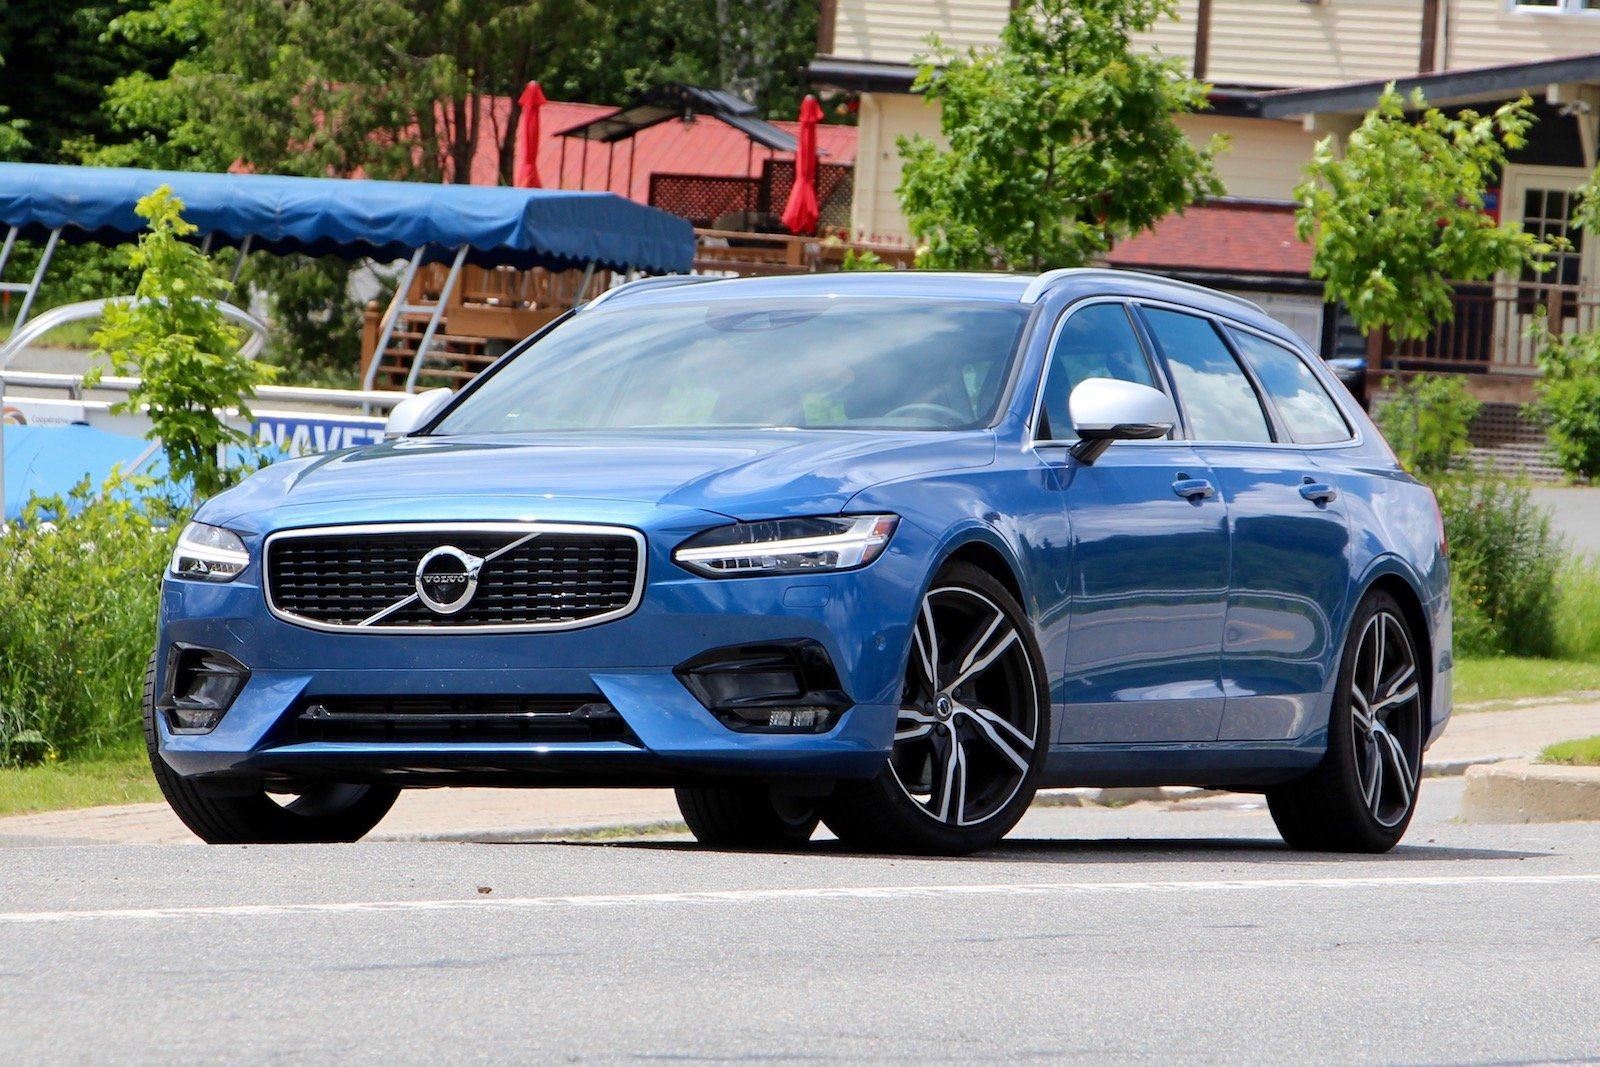 Average Car Insurance >> 2017 Volvo V90 R-Design Review - AutoGuide.com